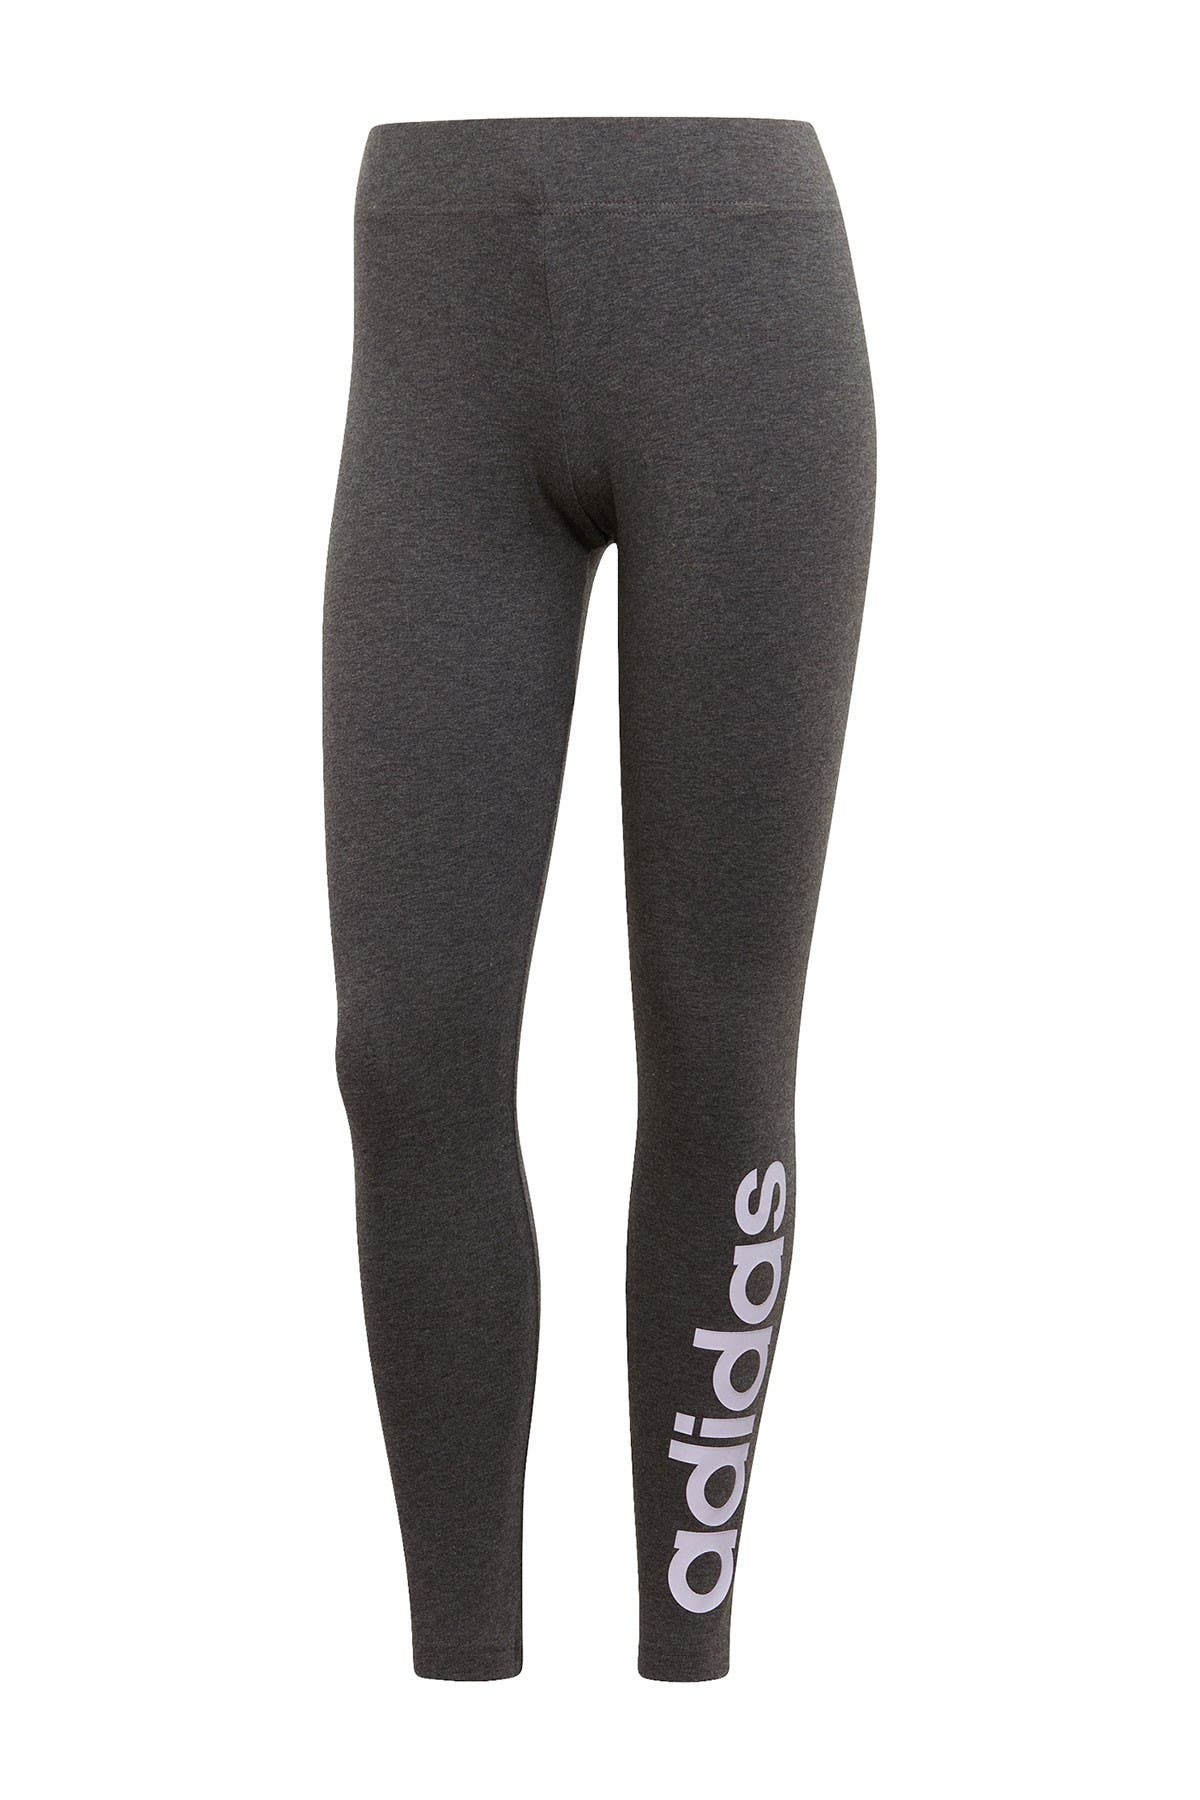 Image of adidas Essentials Linear Tights